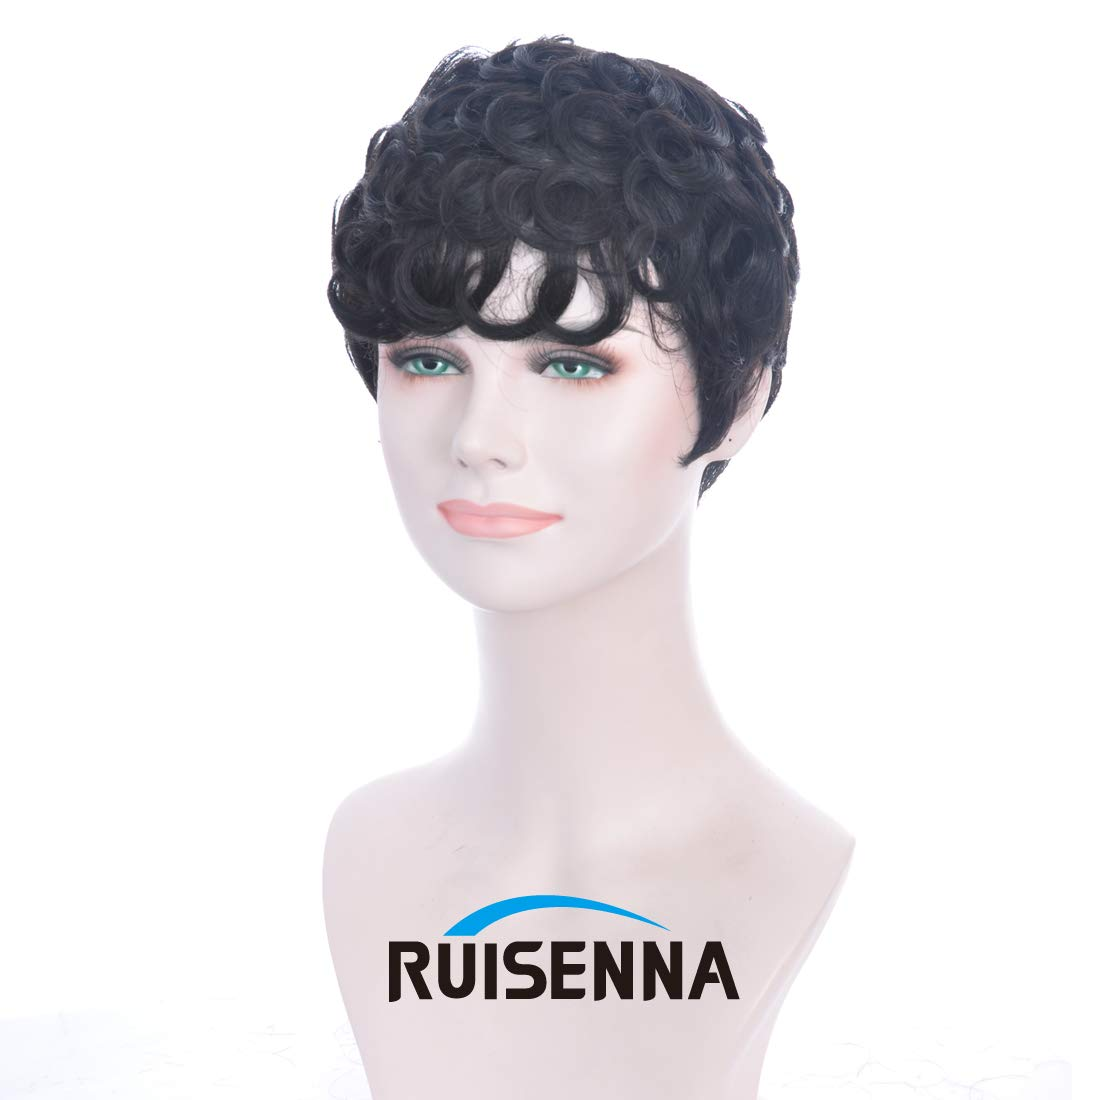 1920s Flapper Headband, Gatsby Headpiece, Wigs RUISENNA 100% Human Hair Short Curly Wigs For Black Women Pixie Wig Big Curls Short Wig $35.99 AT vintagedancer.com